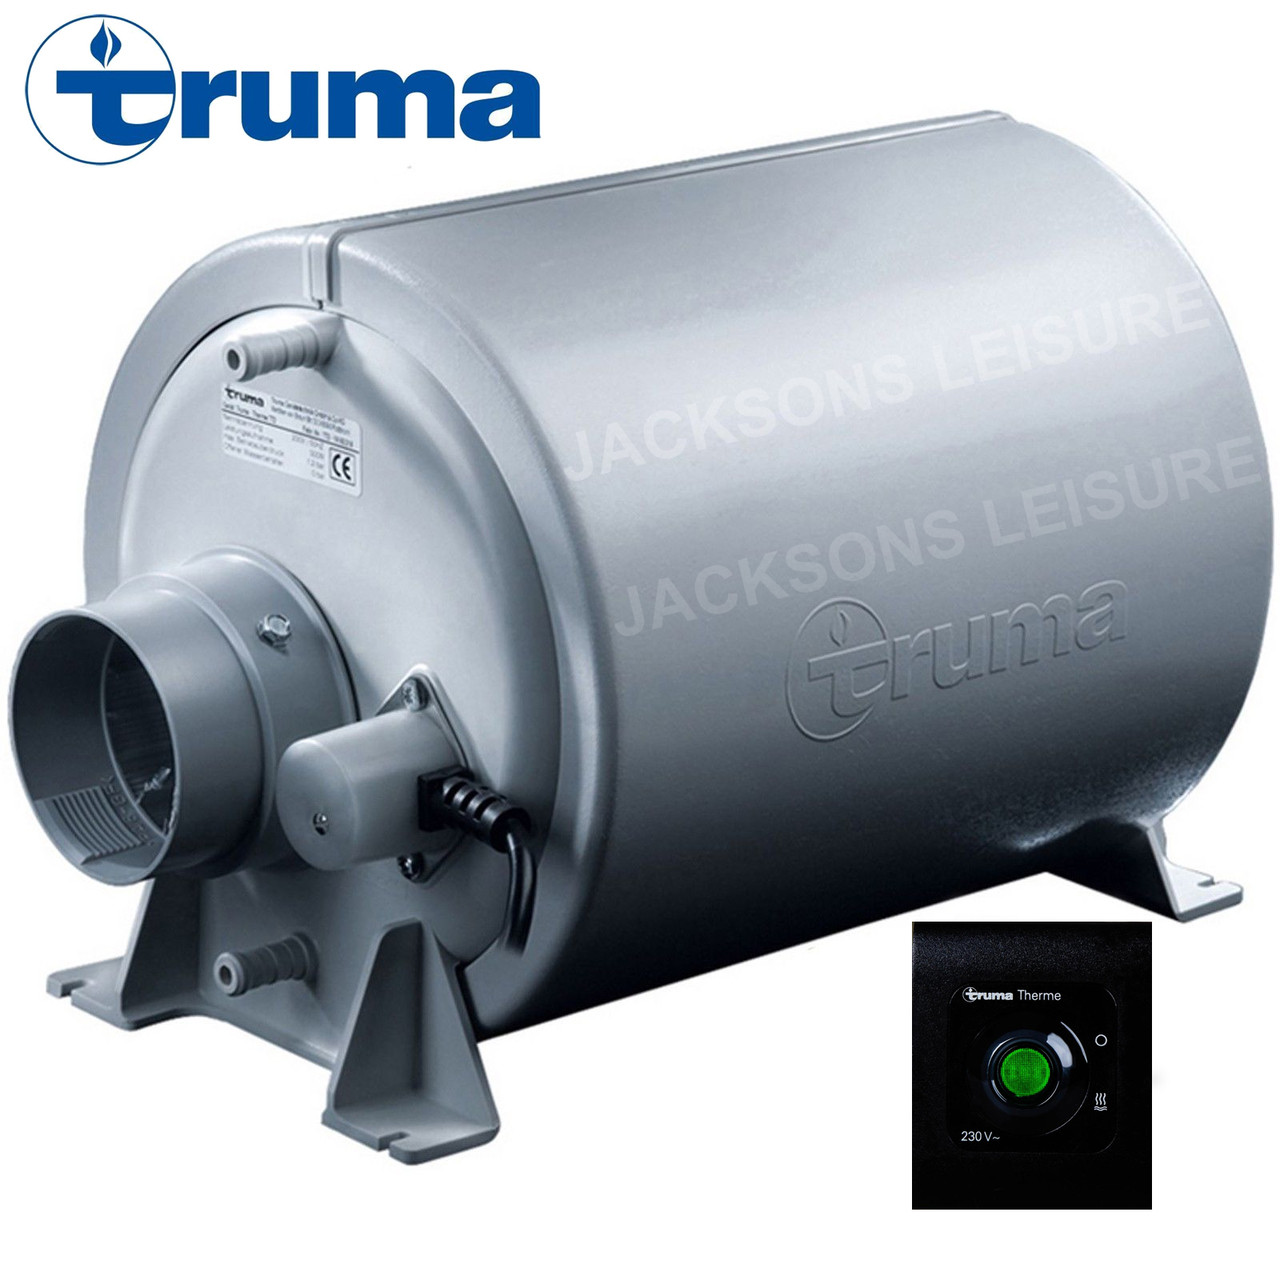 A photo of the Truma Therme TT2 water heater and control panel